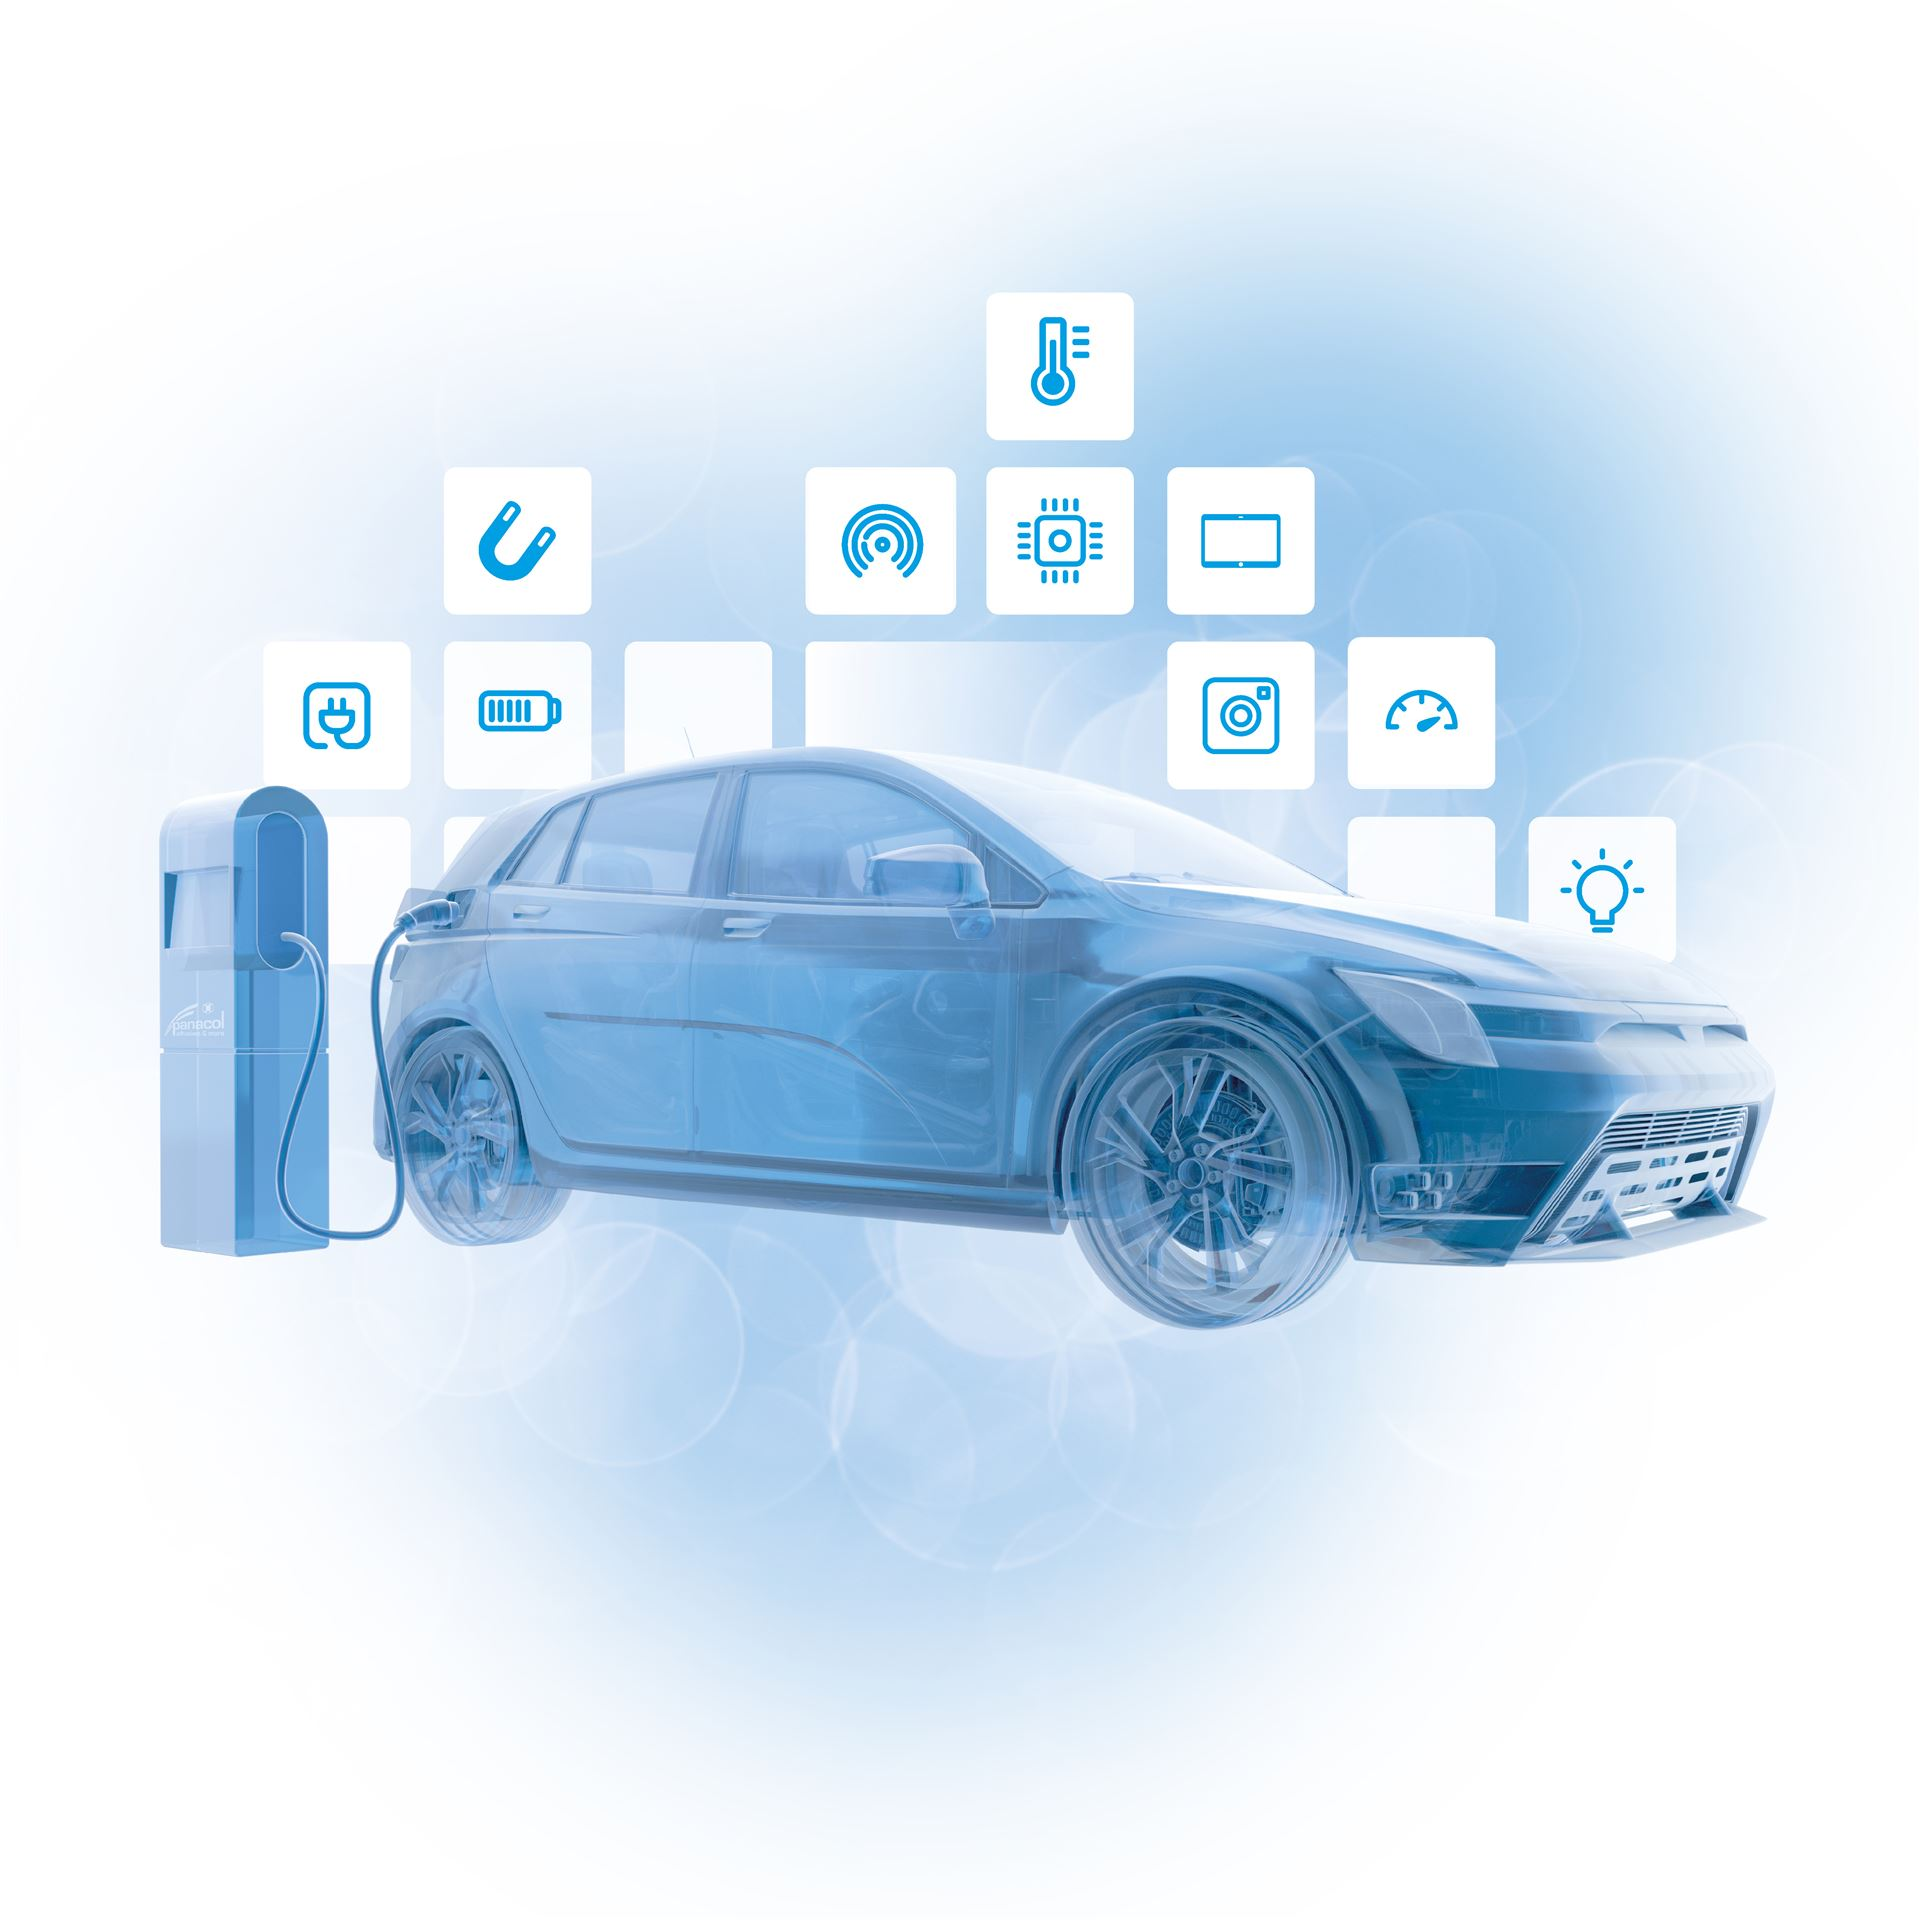 Adhesives are the perfect solution many automotive applications